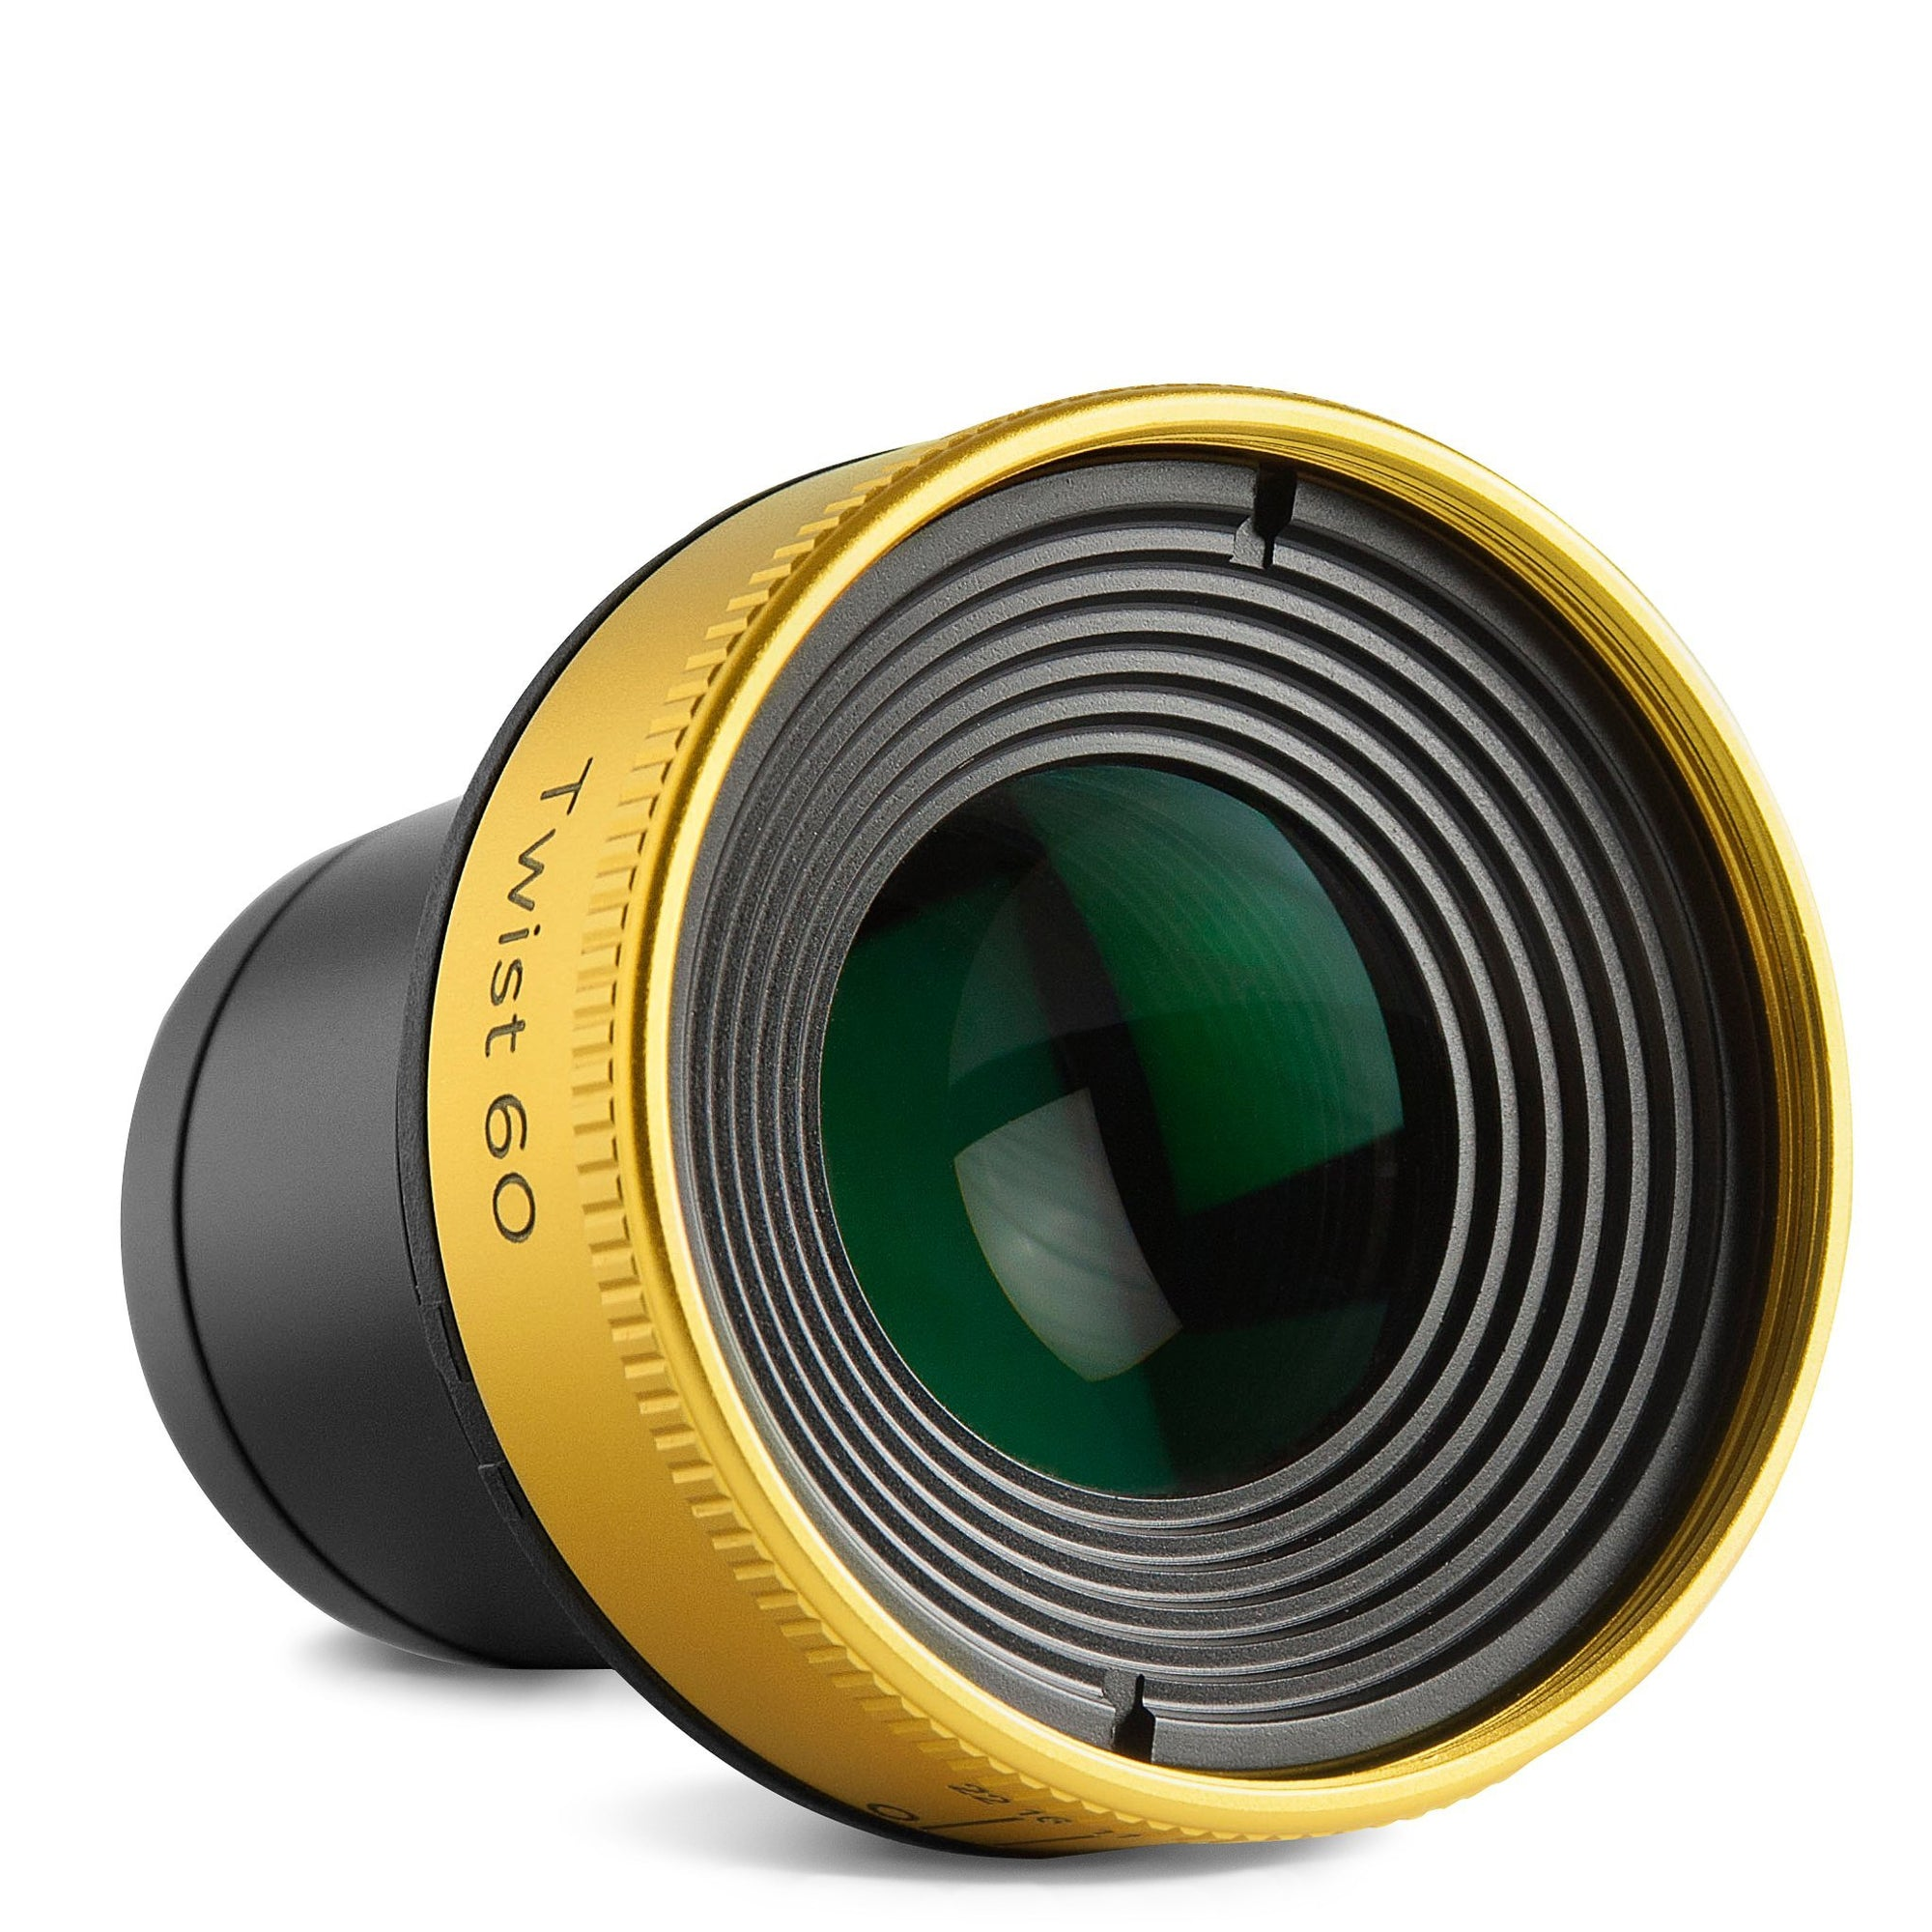 (Refurbished) Twist 60 Optic - Lensbaby Creative Effect Camera Lenses